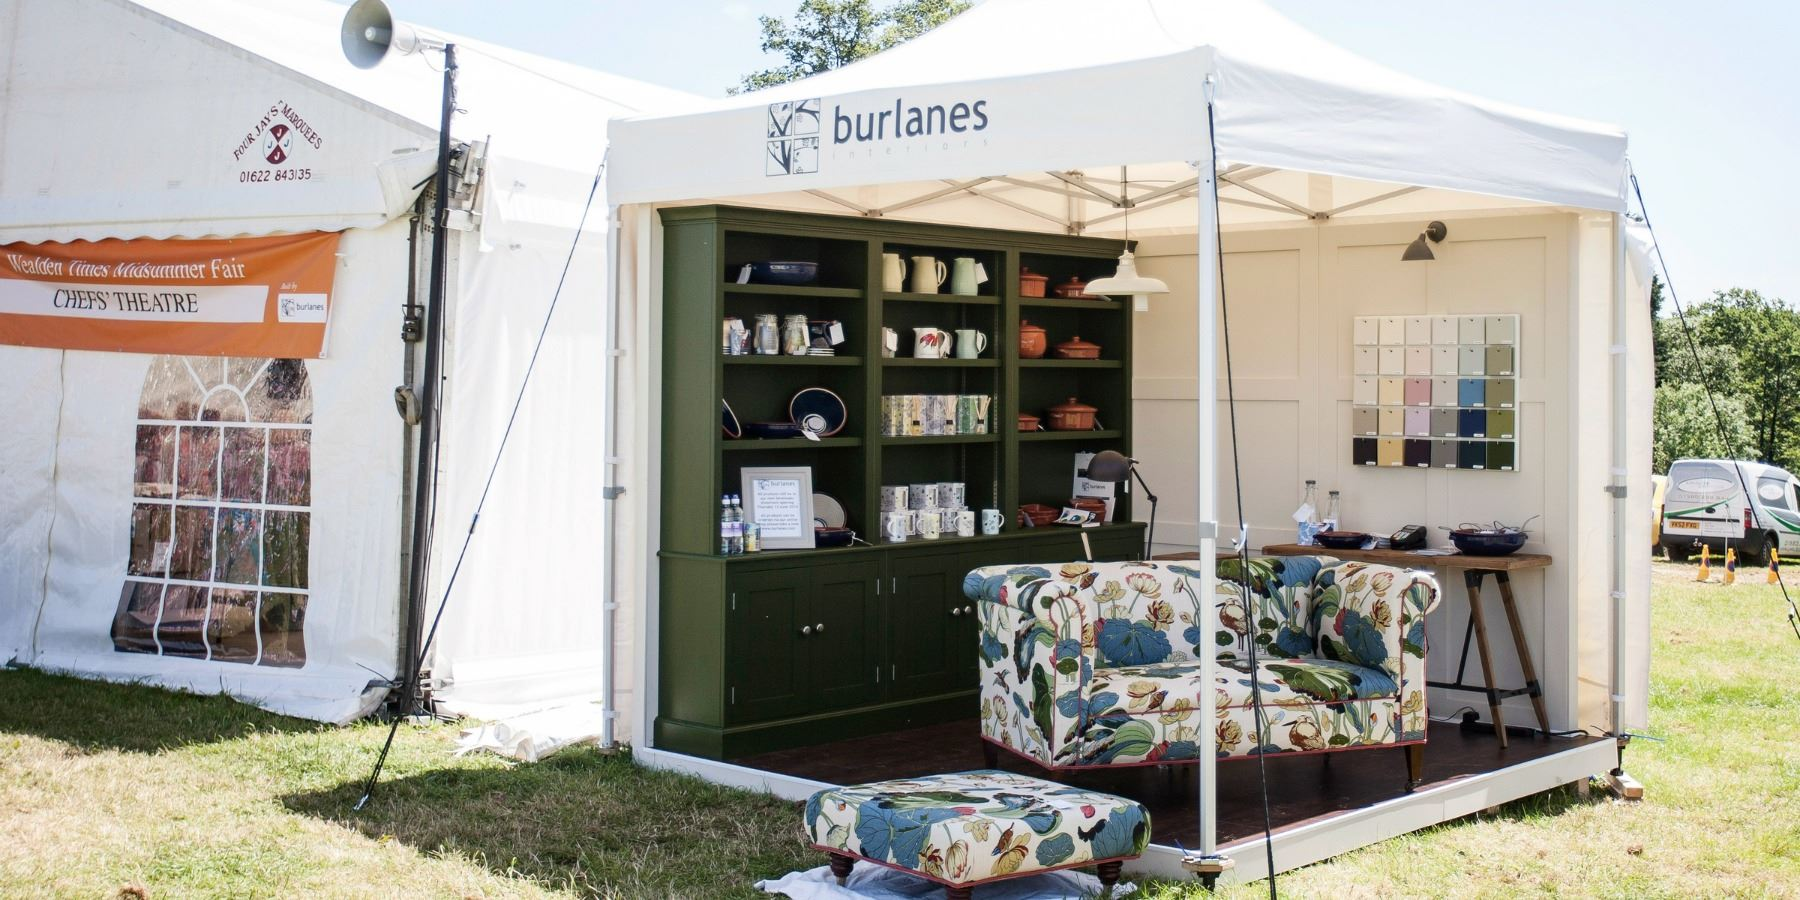 Wealden Times Midsummer Fair -